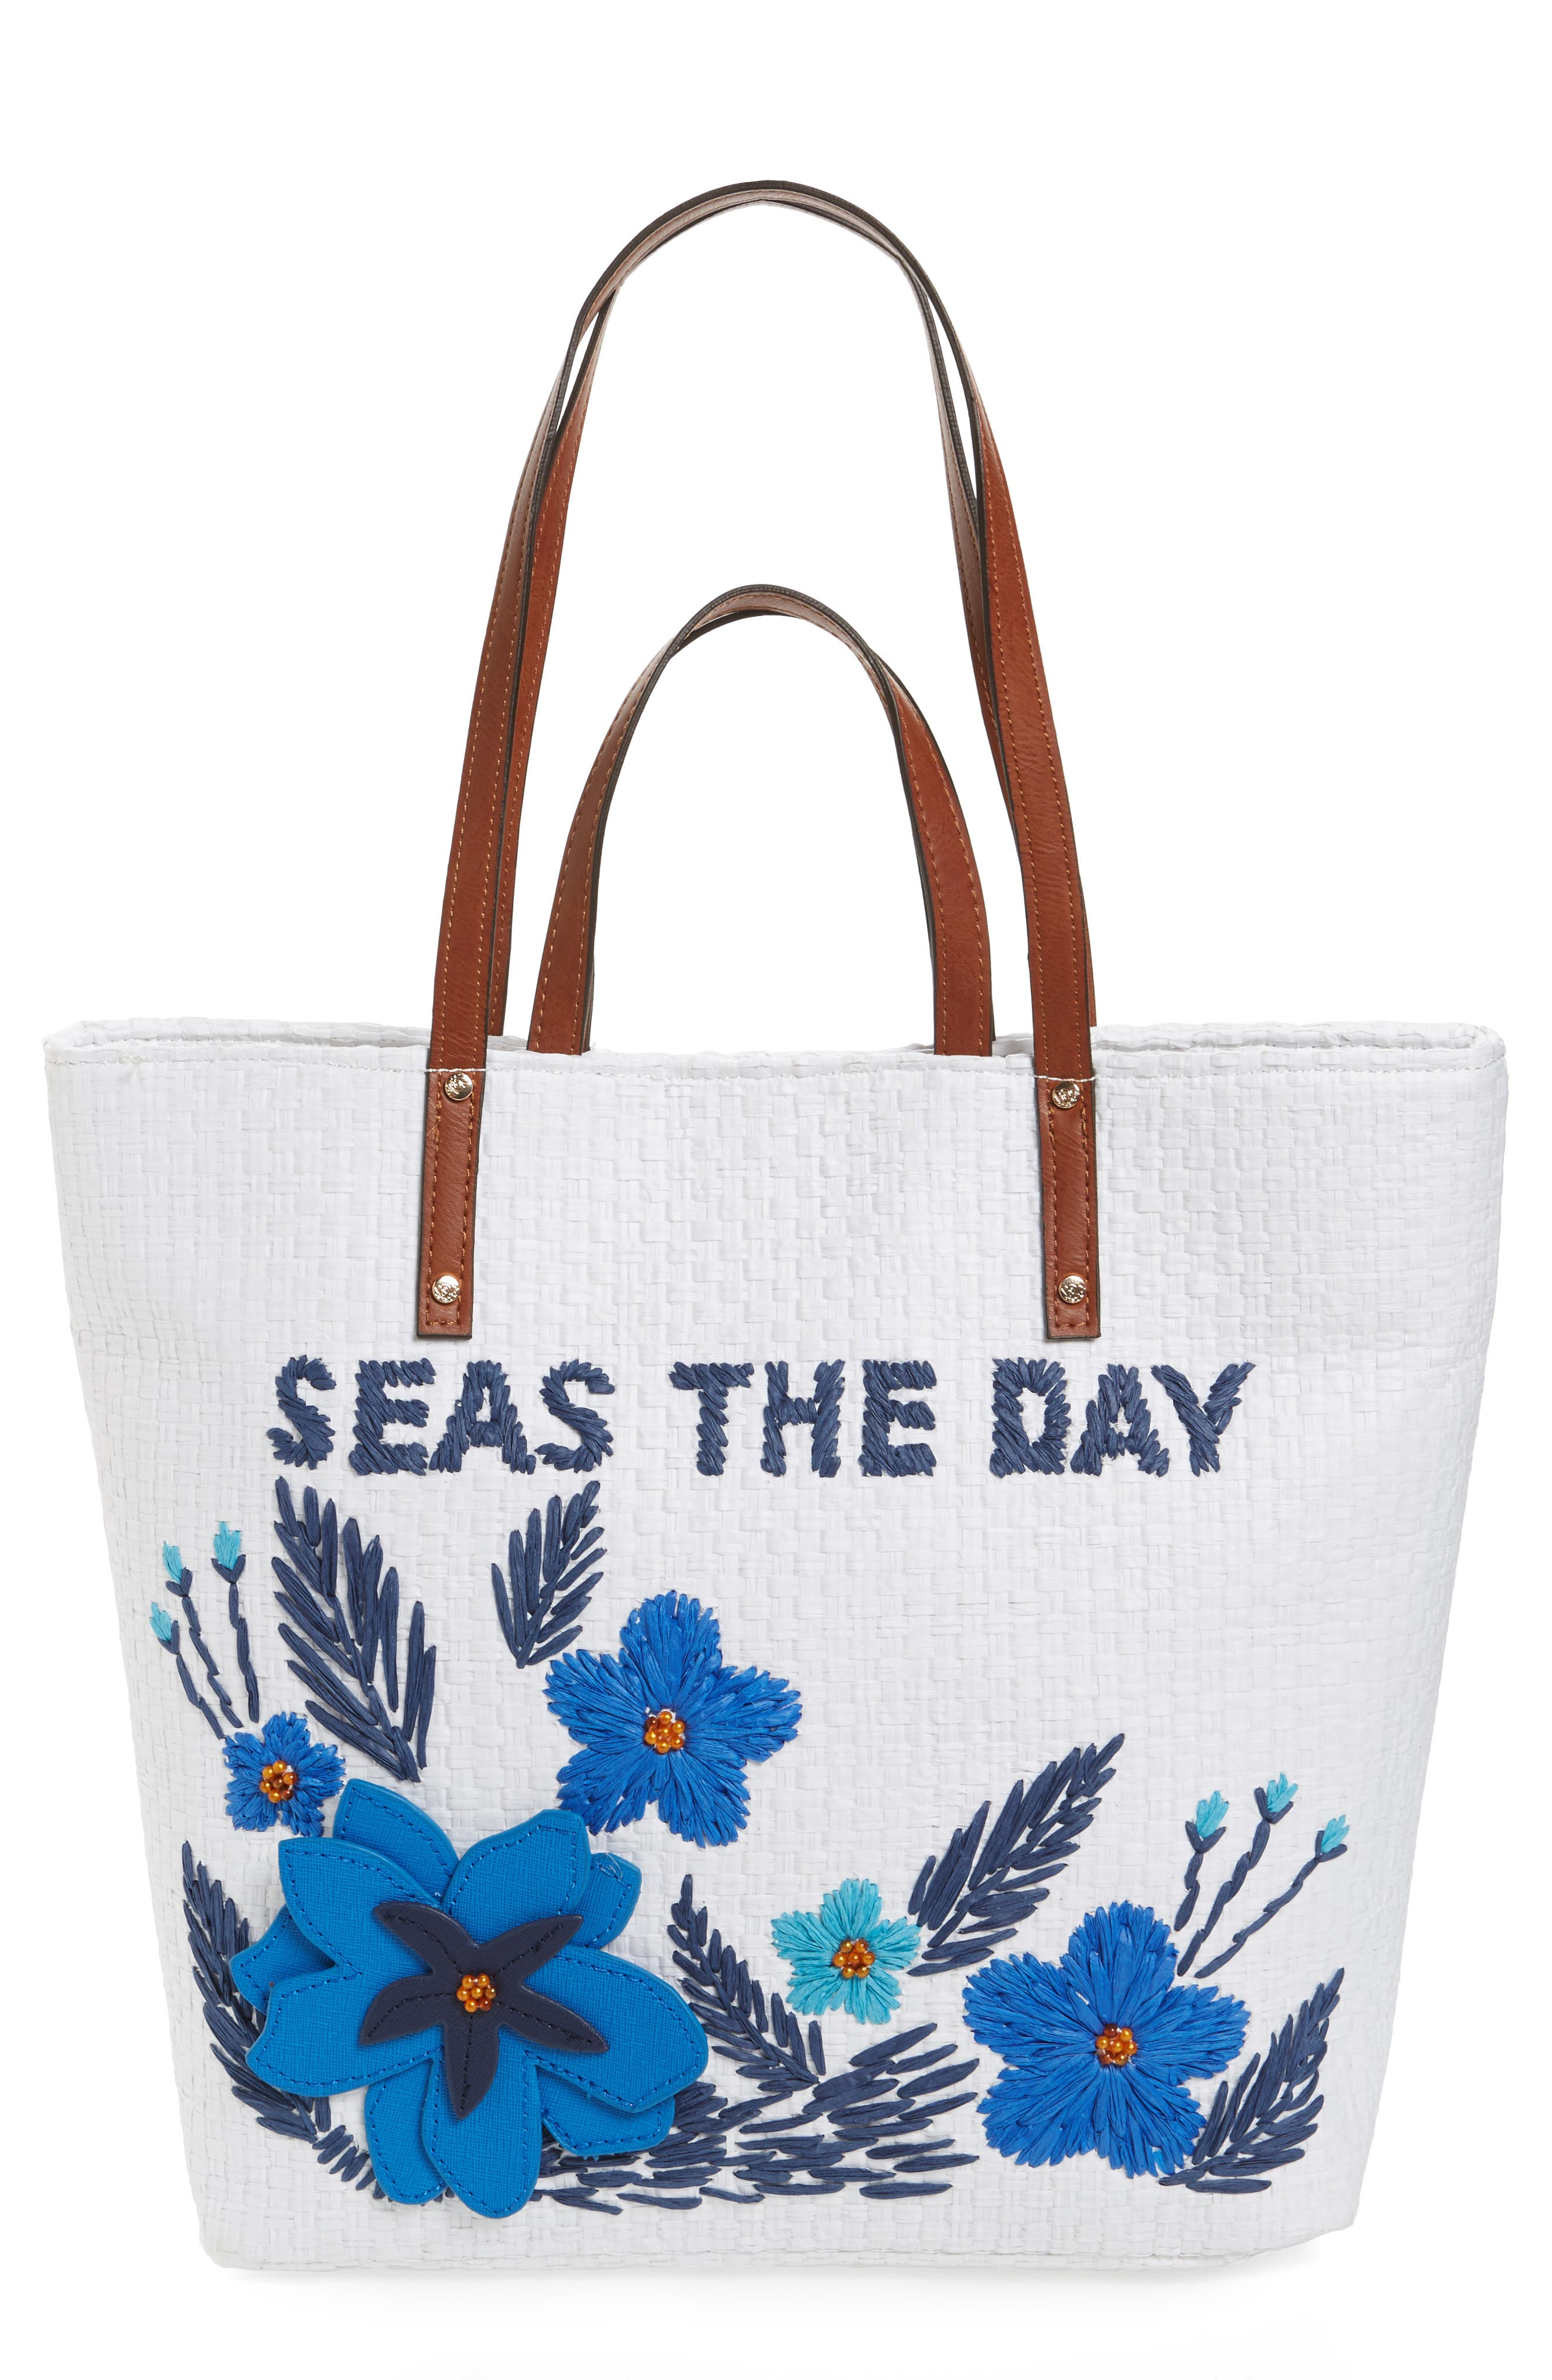 Athen - Seas the Day Embroidered Straw Tote,                         Main,                         color, 400